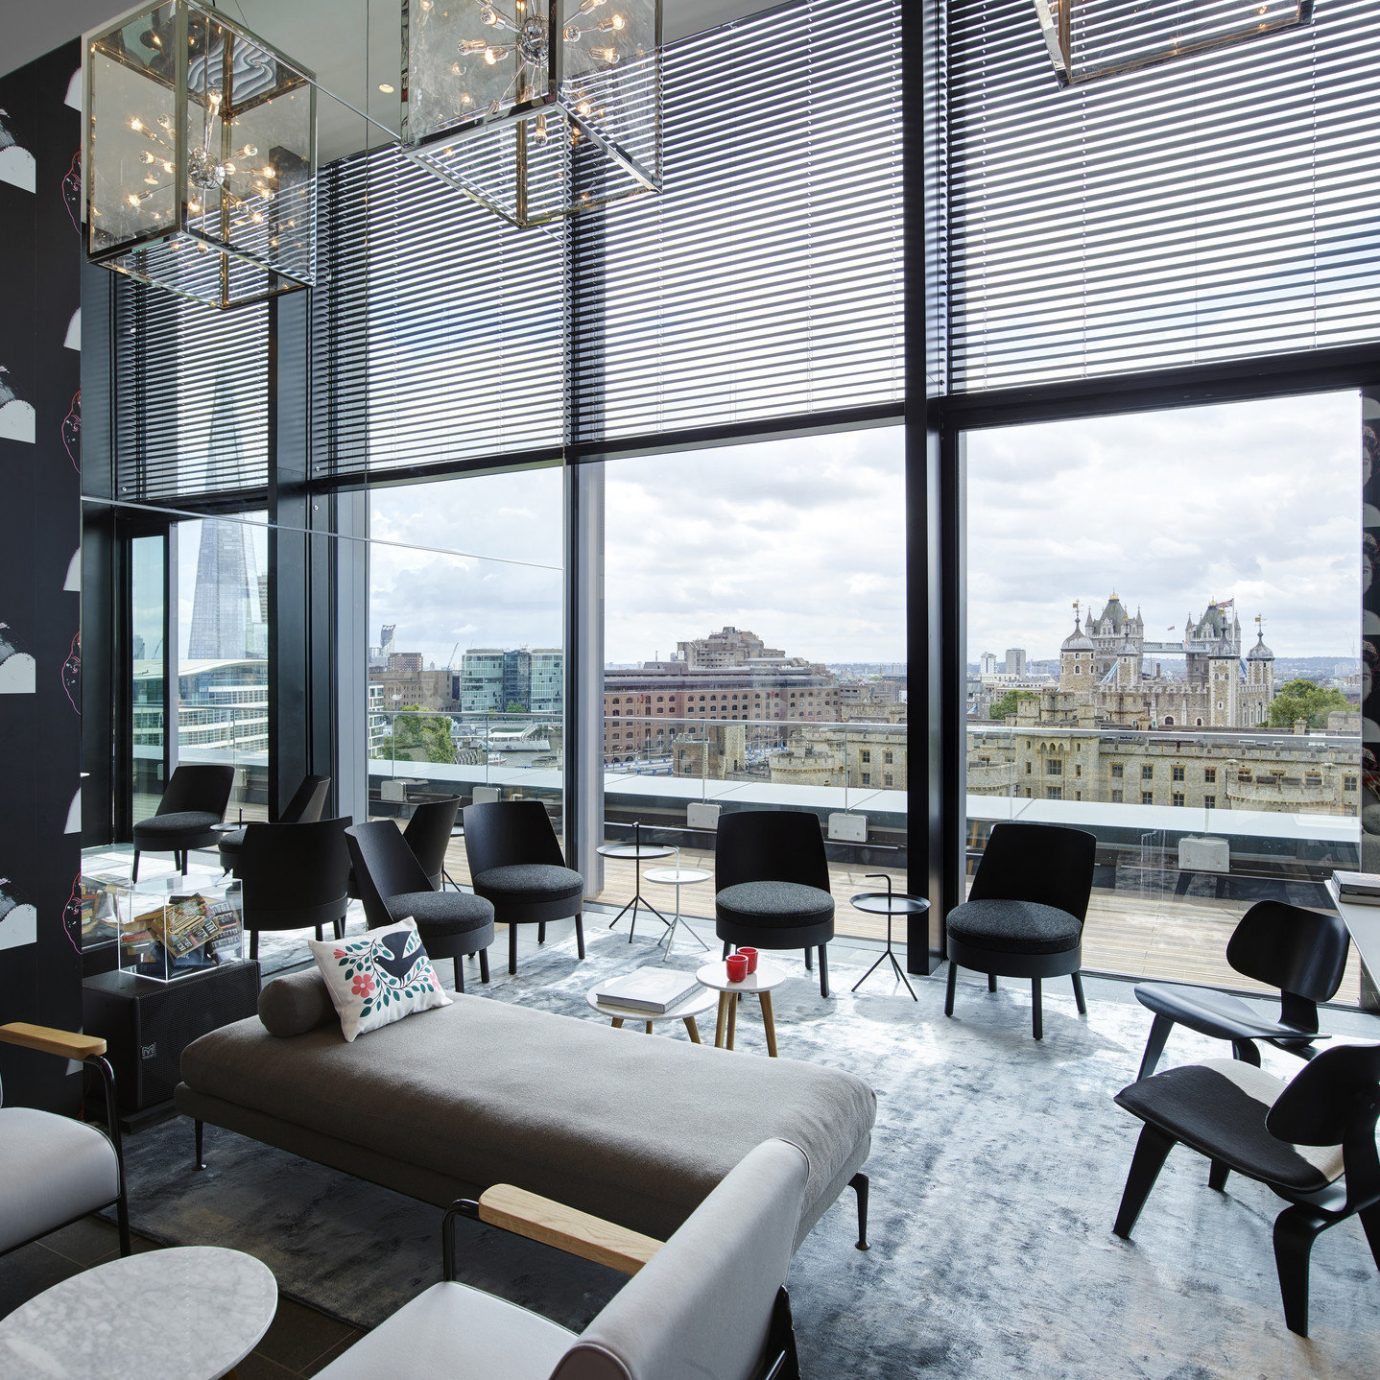 artistic artsy books Boutique charming City city views contemporary cozy decor Elegant fancy Hip homey interior library living area living room Lounge Luxury Modern natural light sophisticated Style + Design stylish trendy view windows property condominium restaurant